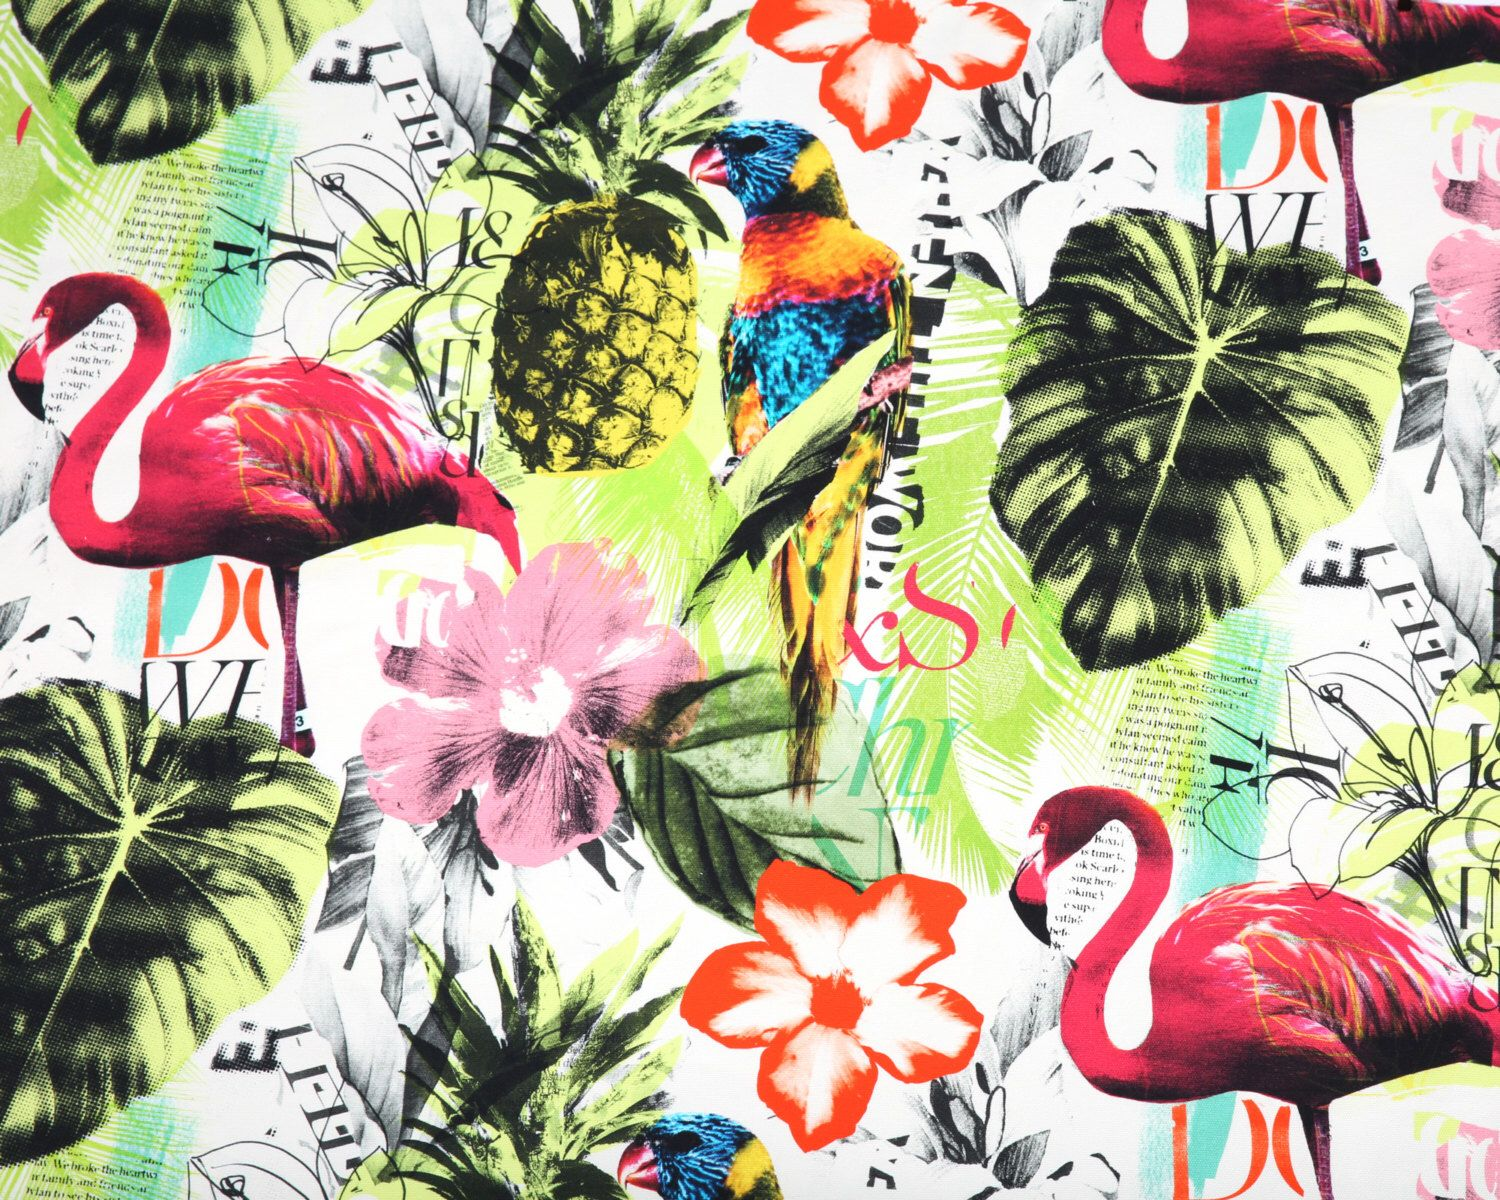 One Yard Braemore Pineapple Flamingo Art Collage Fuchsia Tropical Home  Decor Fabric High Fashion Jamil Upholstery